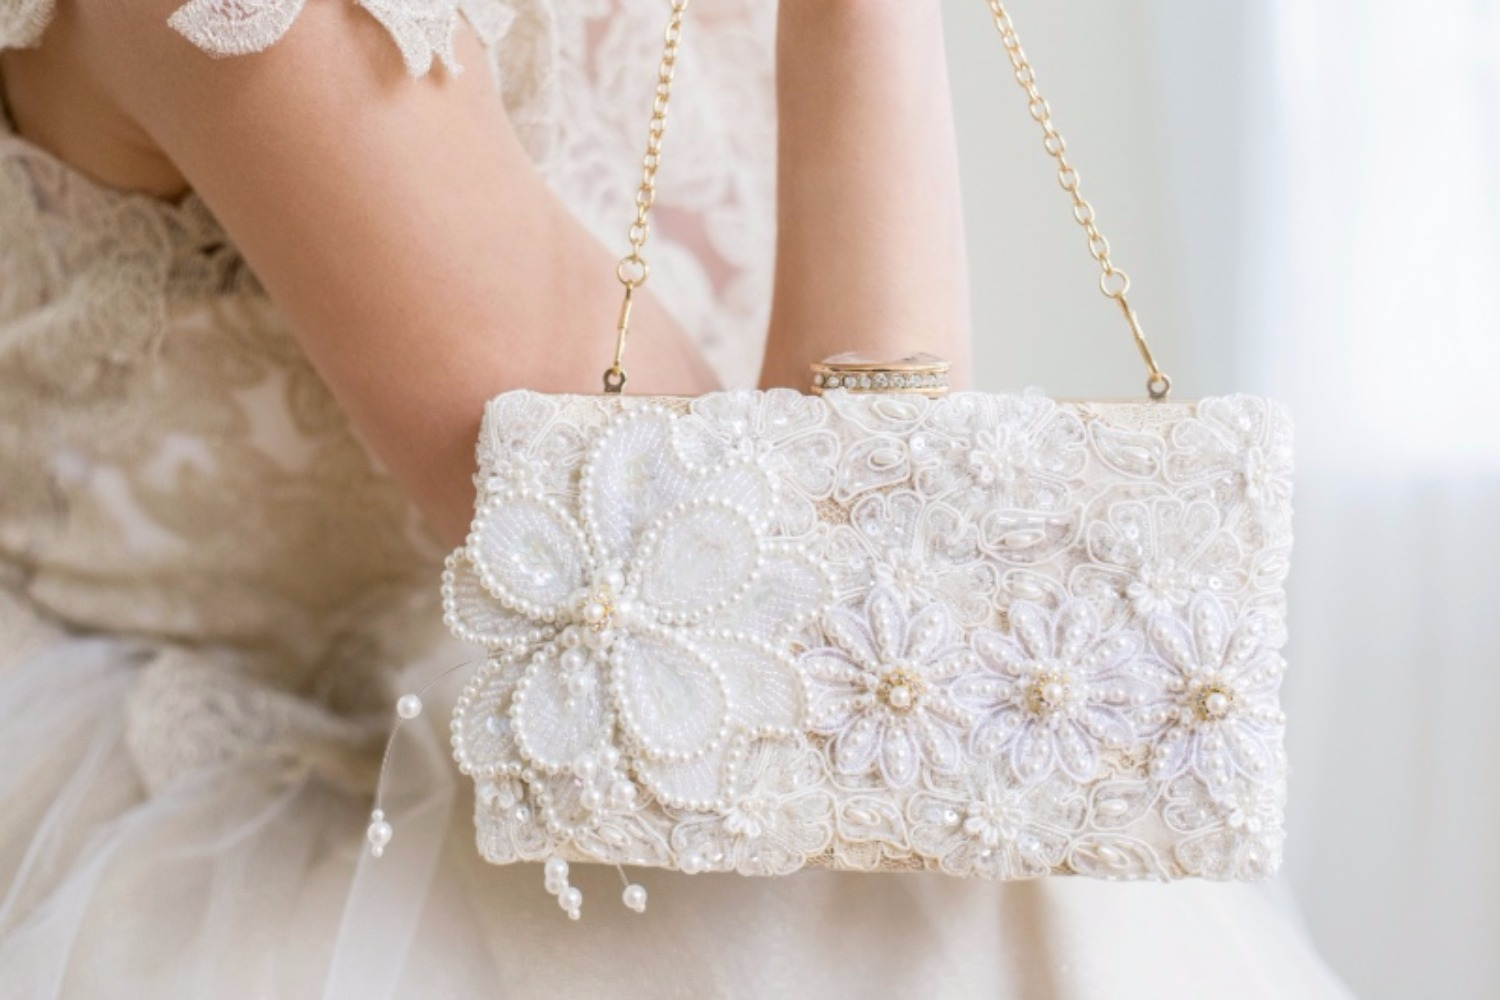 Yup, we'd say this was a statement clutch. Just add some beaded pearls and a beaded floral applique for serious effect.    Cloe Noel